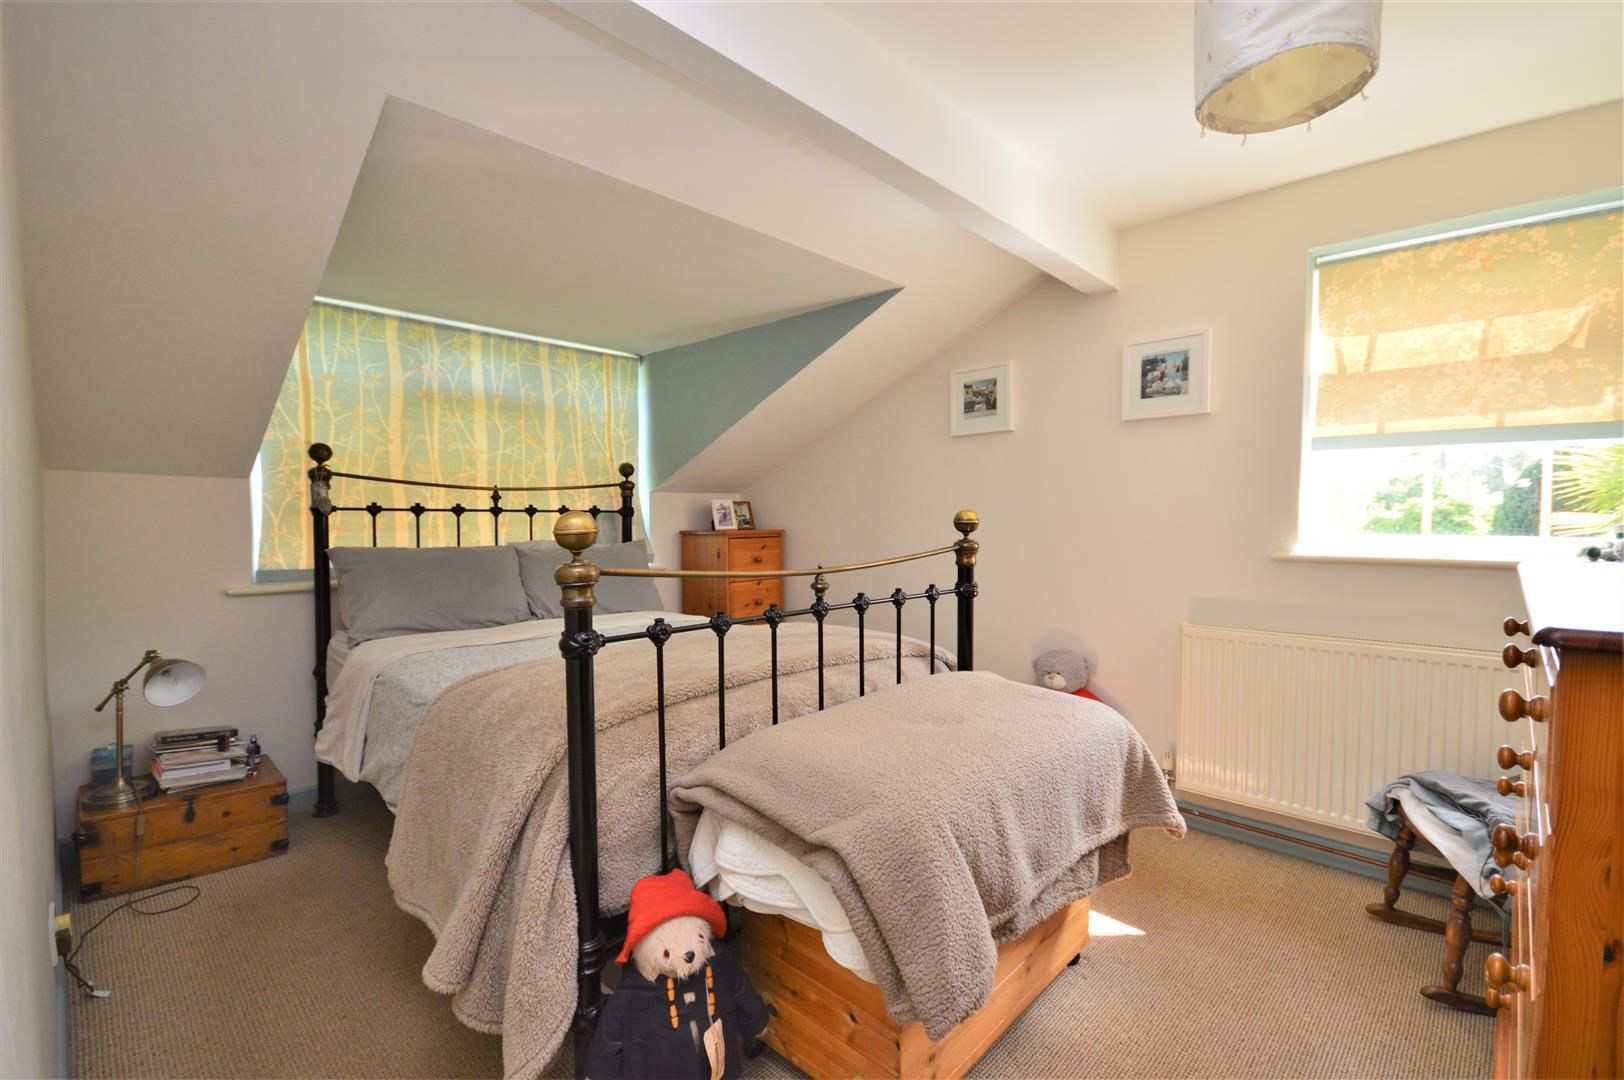 3 bed semi-detached for sale in Stretton Sugwas 10